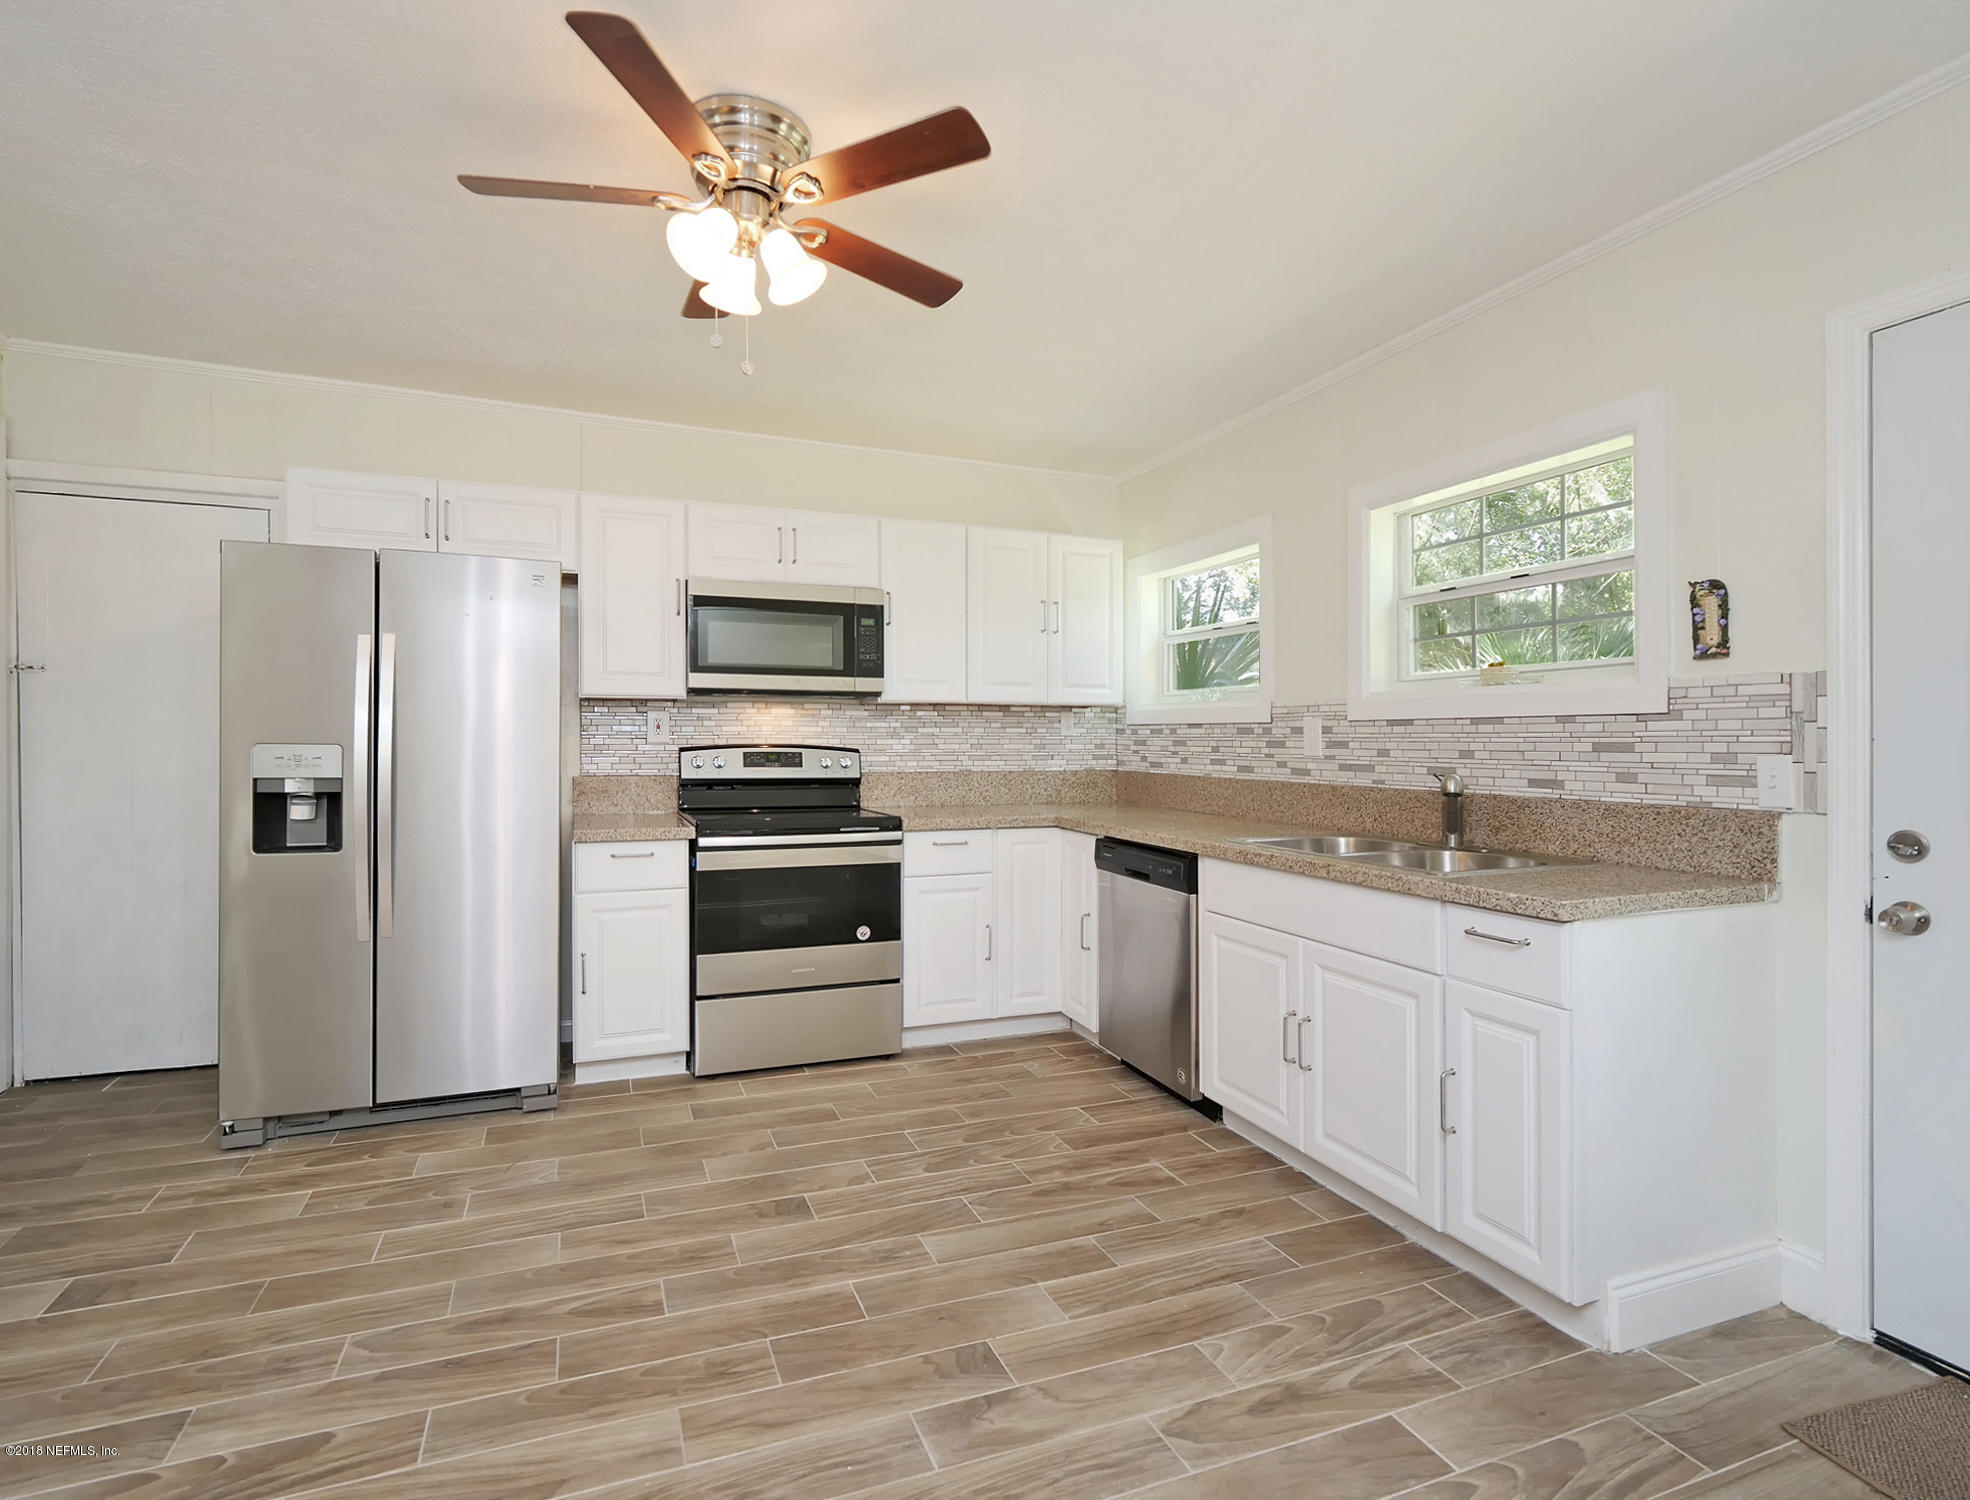 3616 ABBY, JACKSONVILLE, FLORIDA 32207, 4 Bedrooms Bedrooms, ,2 BathroomsBathrooms,Residential - single family,For sale,ABBY,965482